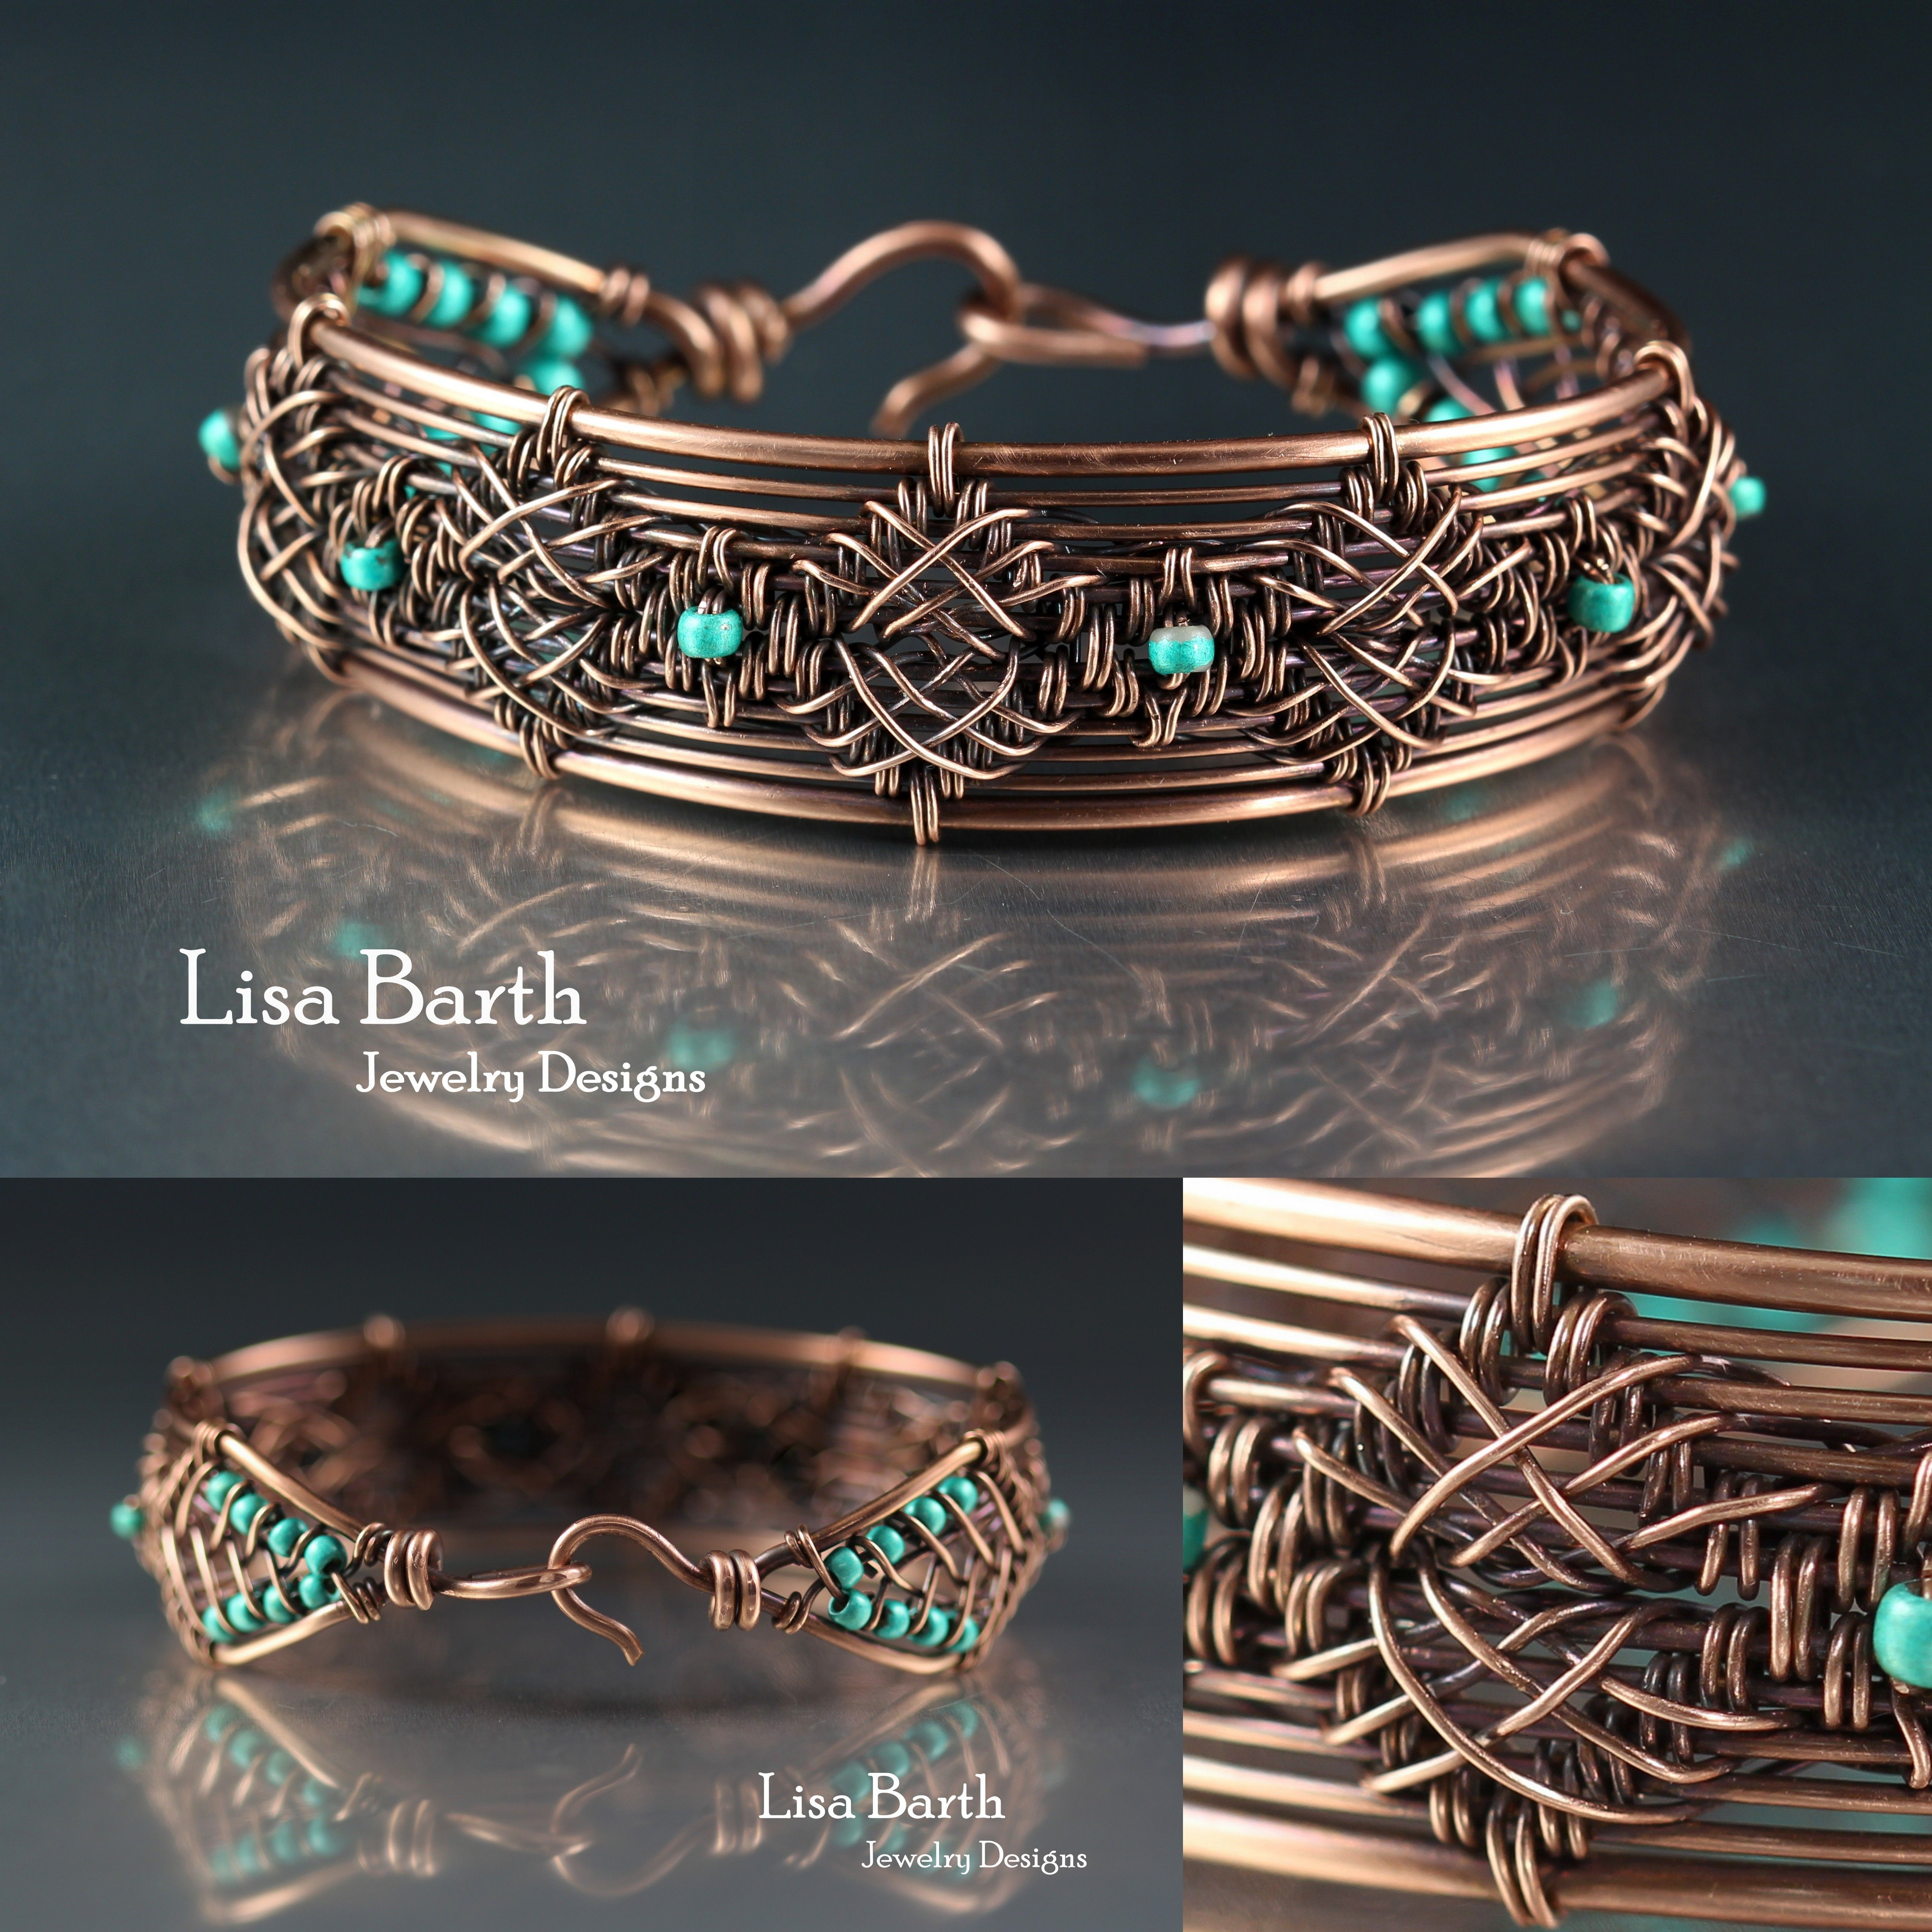 hand woven piece in solid copper wire lisa barth jewelry pinterest fil cuivre et fil de fer. Black Bedroom Furniture Sets. Home Design Ideas